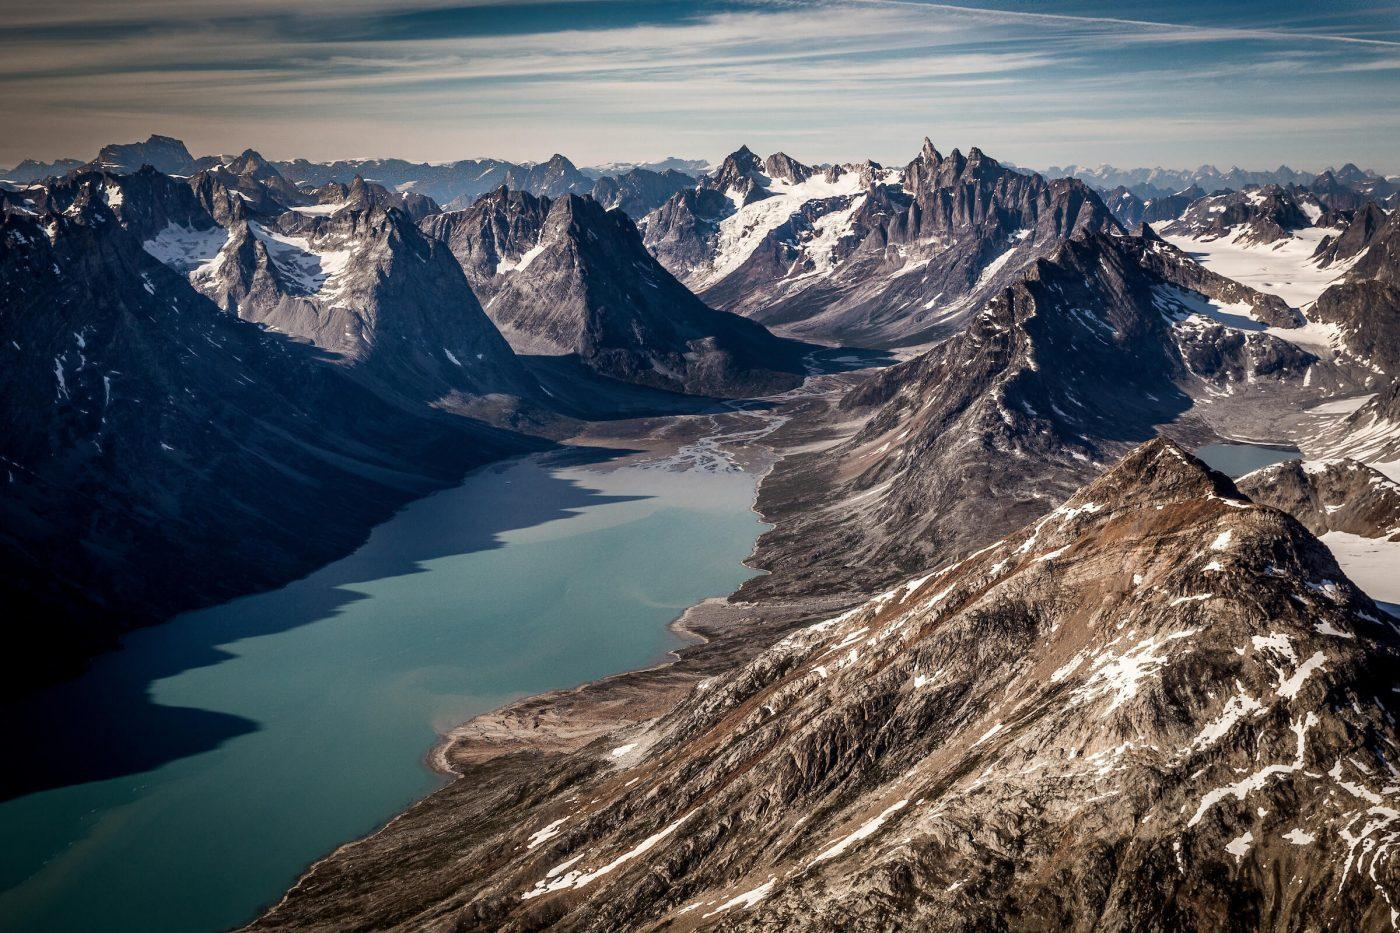 A view over the fjord leading towards the famous Triplets peaks and the glacier near Tasiilaq Mountain Hut in East Greenland. Photo by Mads Pihl